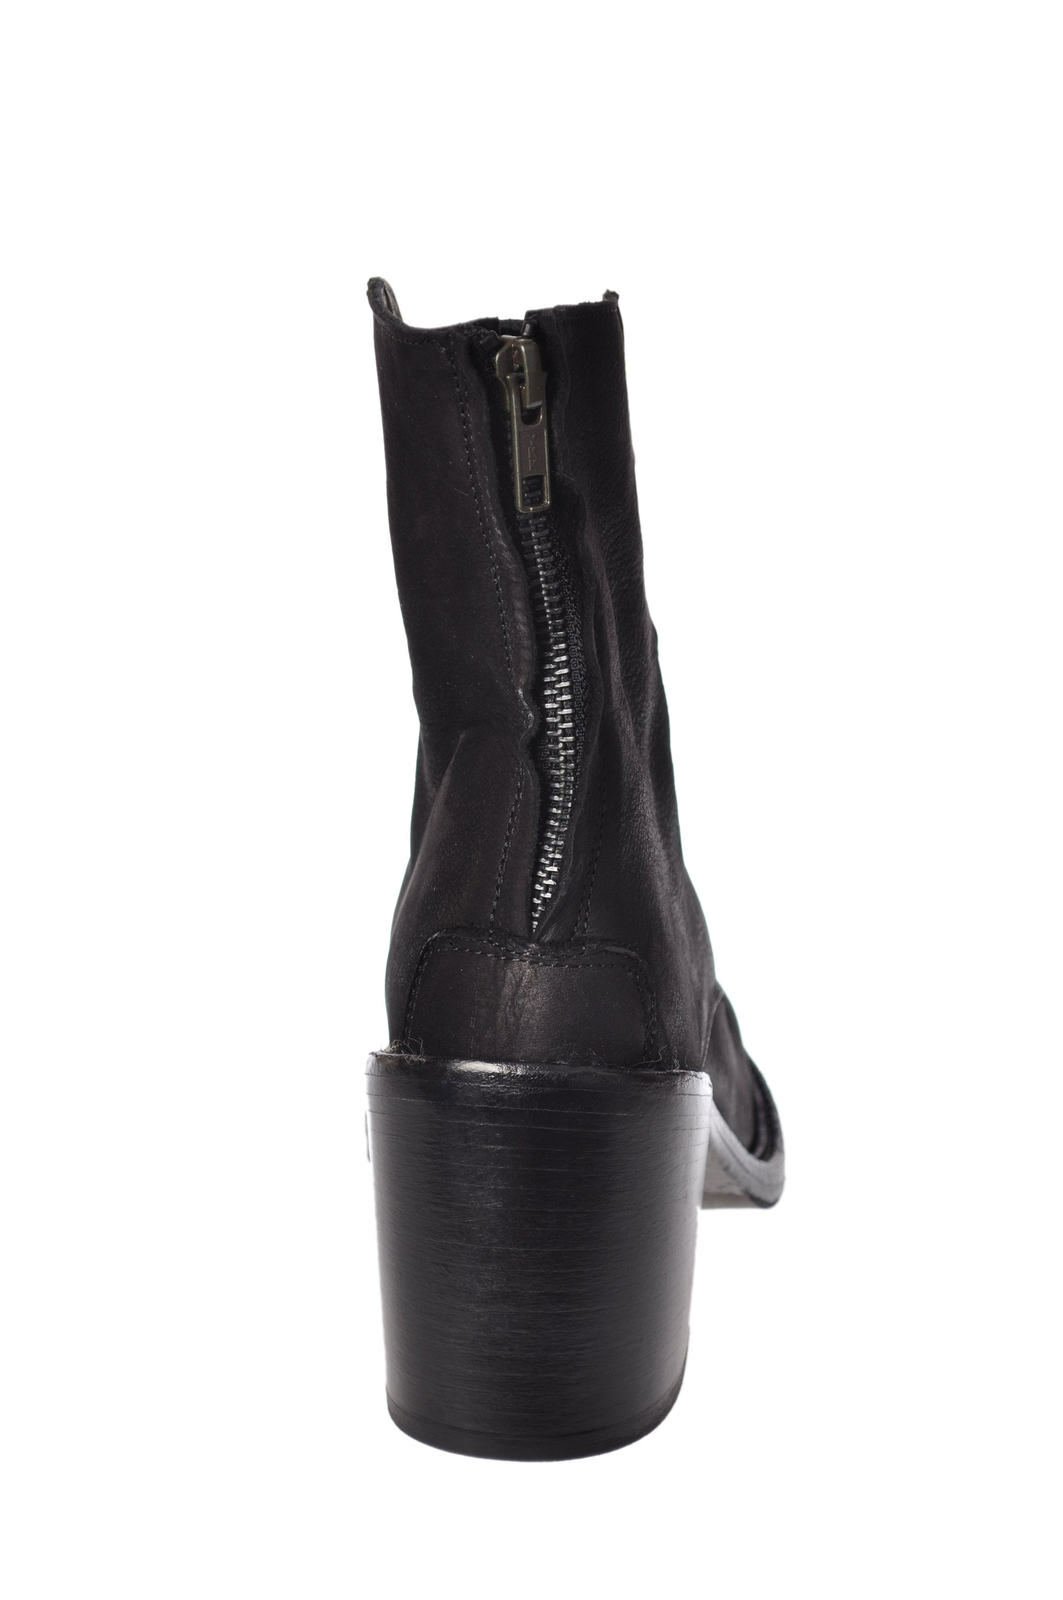 Lemarè - Shoes-Ankle-Boots - Woman - Black - 451915C184254